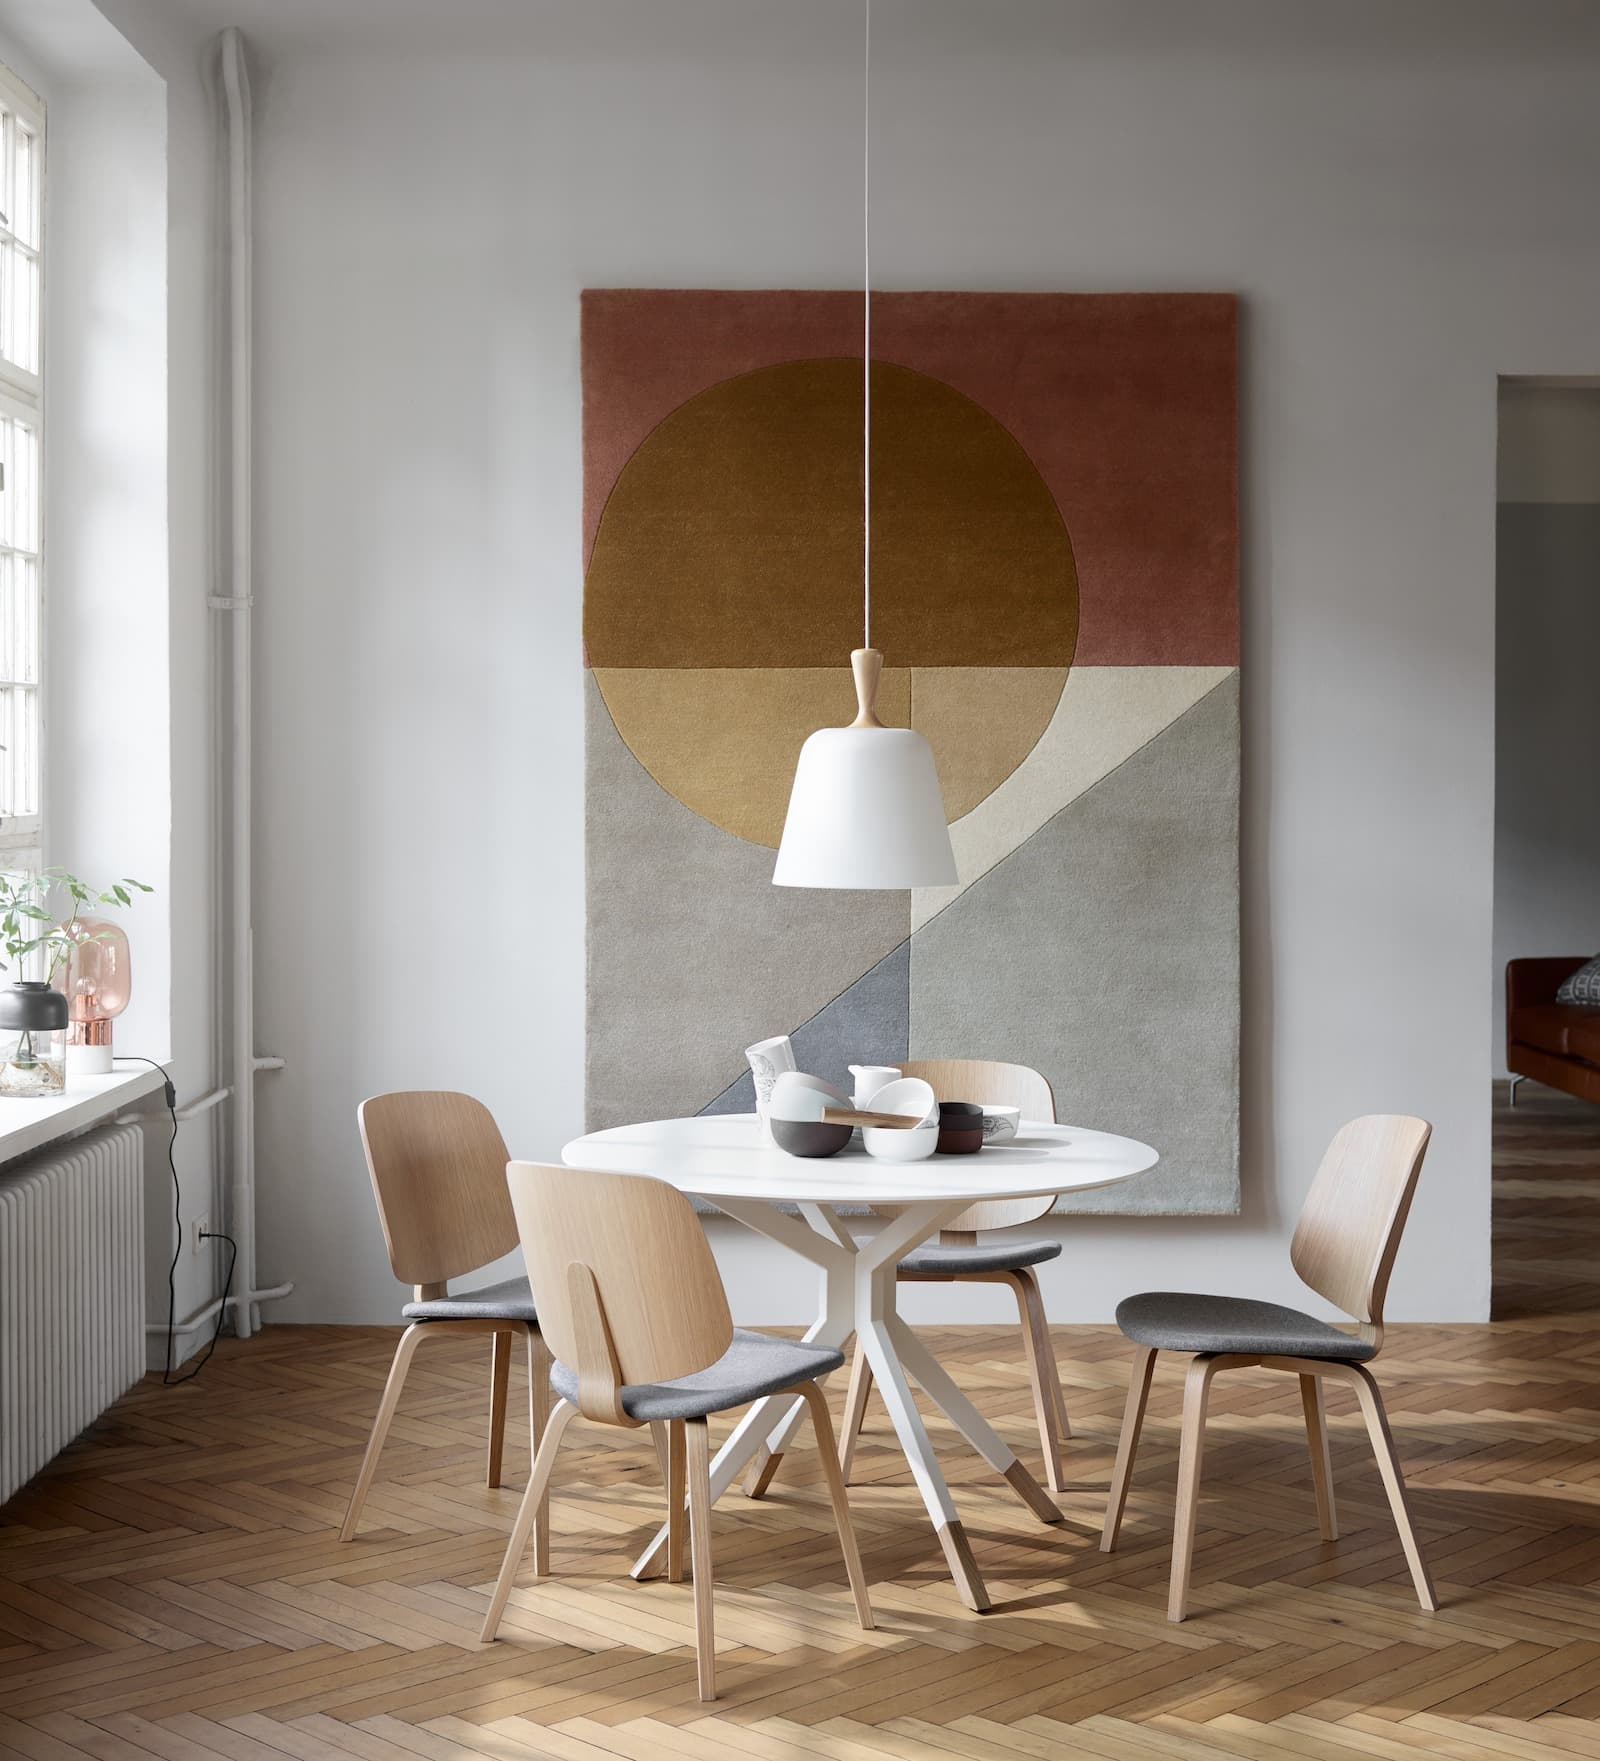 bo concept rug as art in dining room with light timber herringbone floor